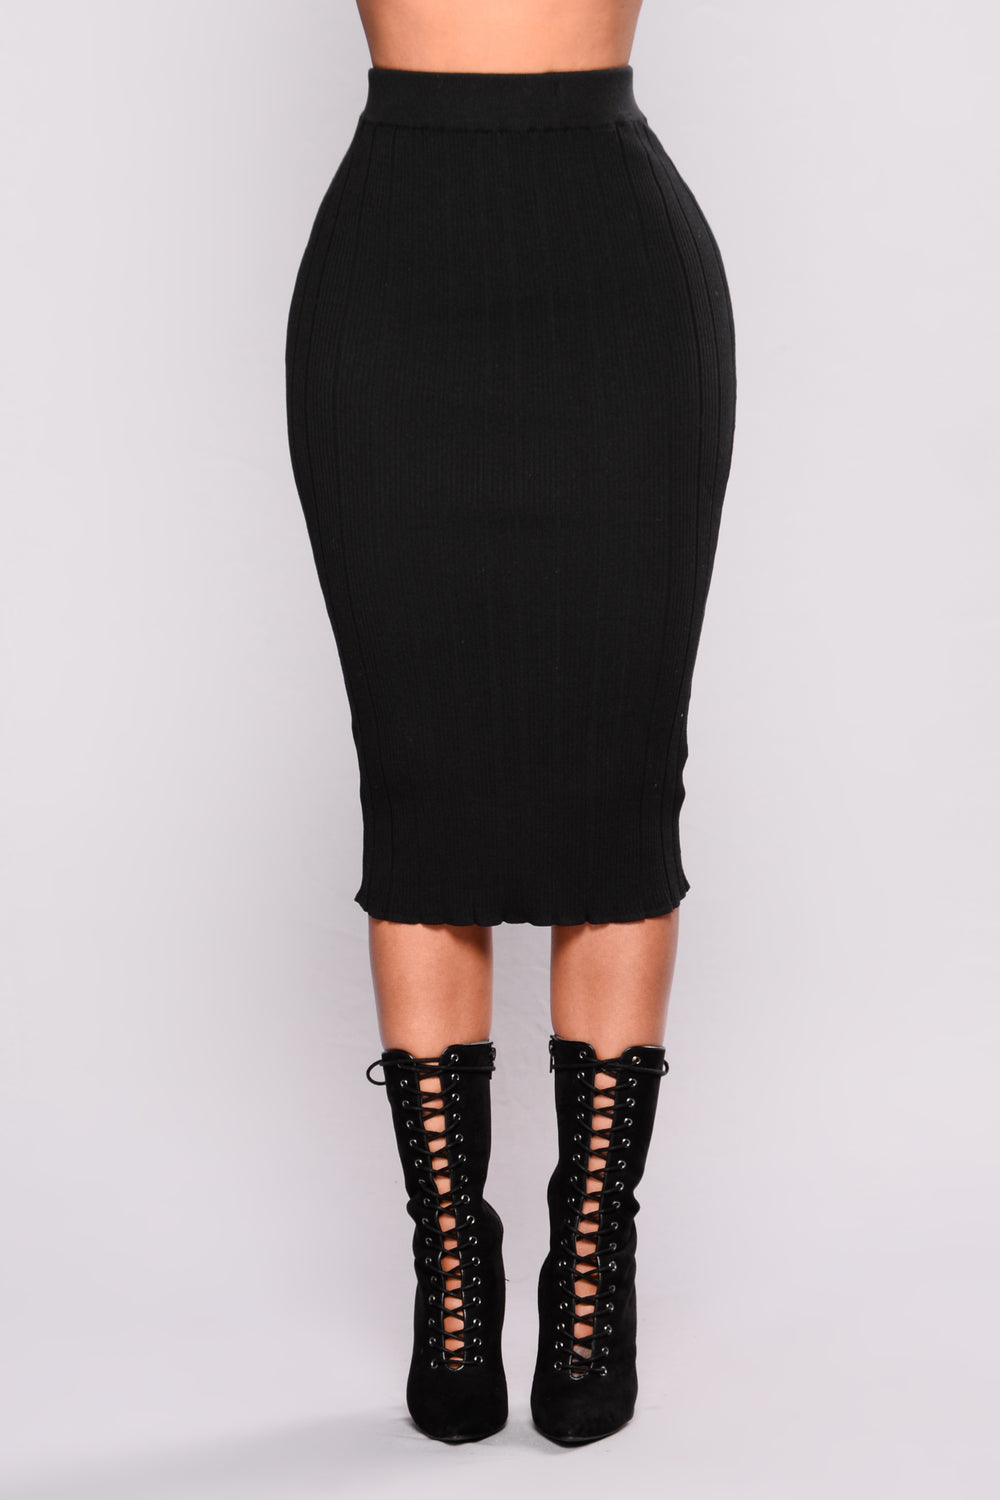 Guilty Pleasure Ribbed Skirt - Black